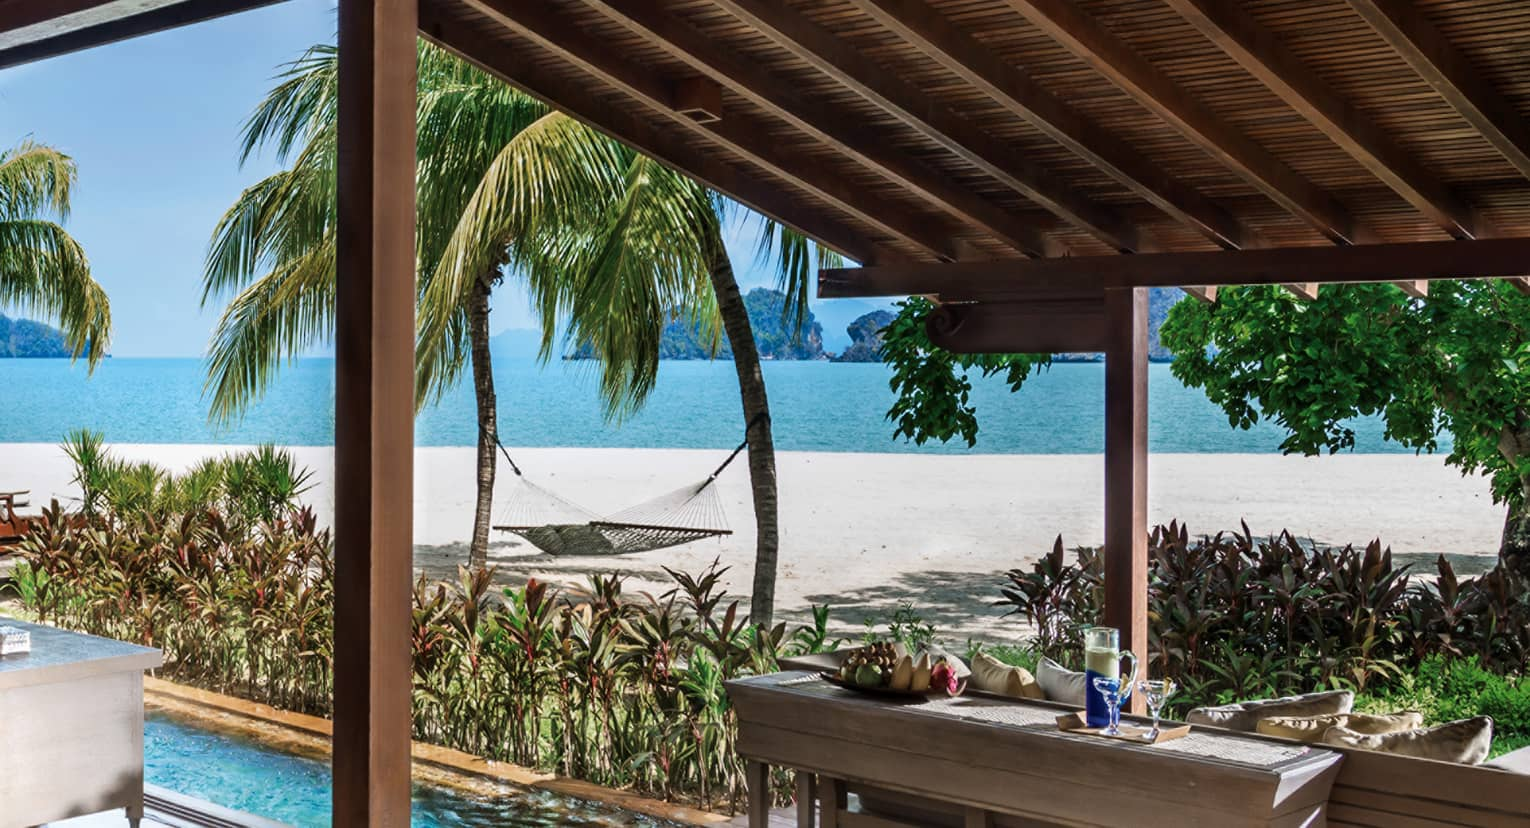 Villa awning over console table with fruit, drinks, plunge pool, by beach